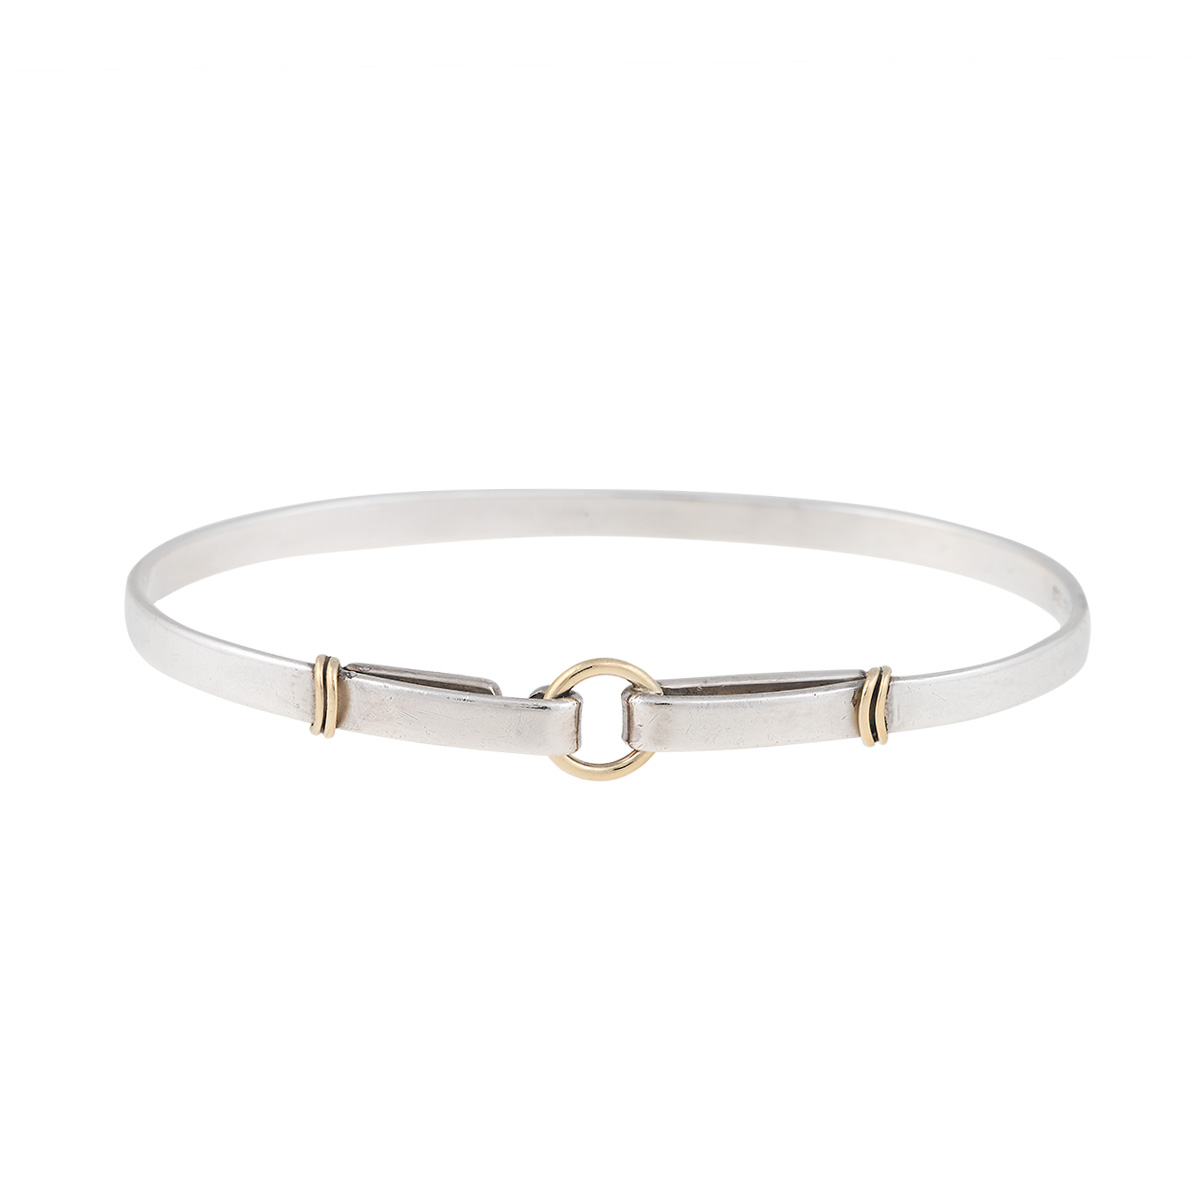 a136f320e5010 Tiffany & Co. Sterling Silver and 18K Yellow Gold Hook Bangle Bracelet